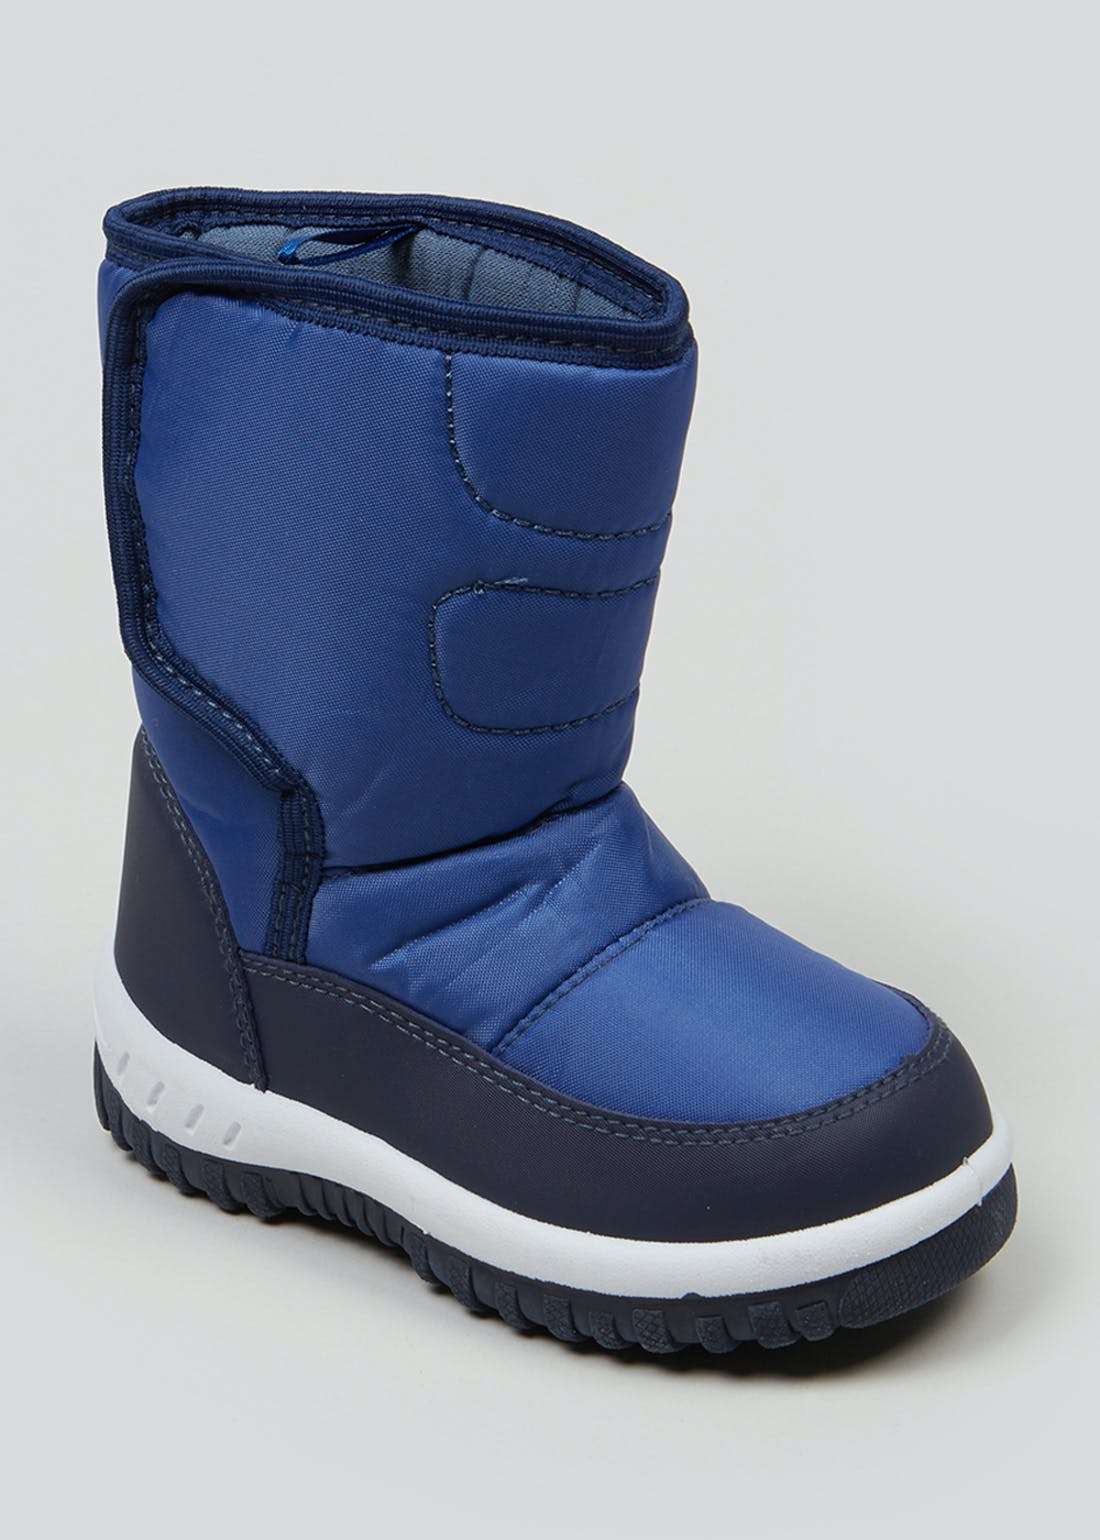 Kids Snow Boots (Younger 4-12)